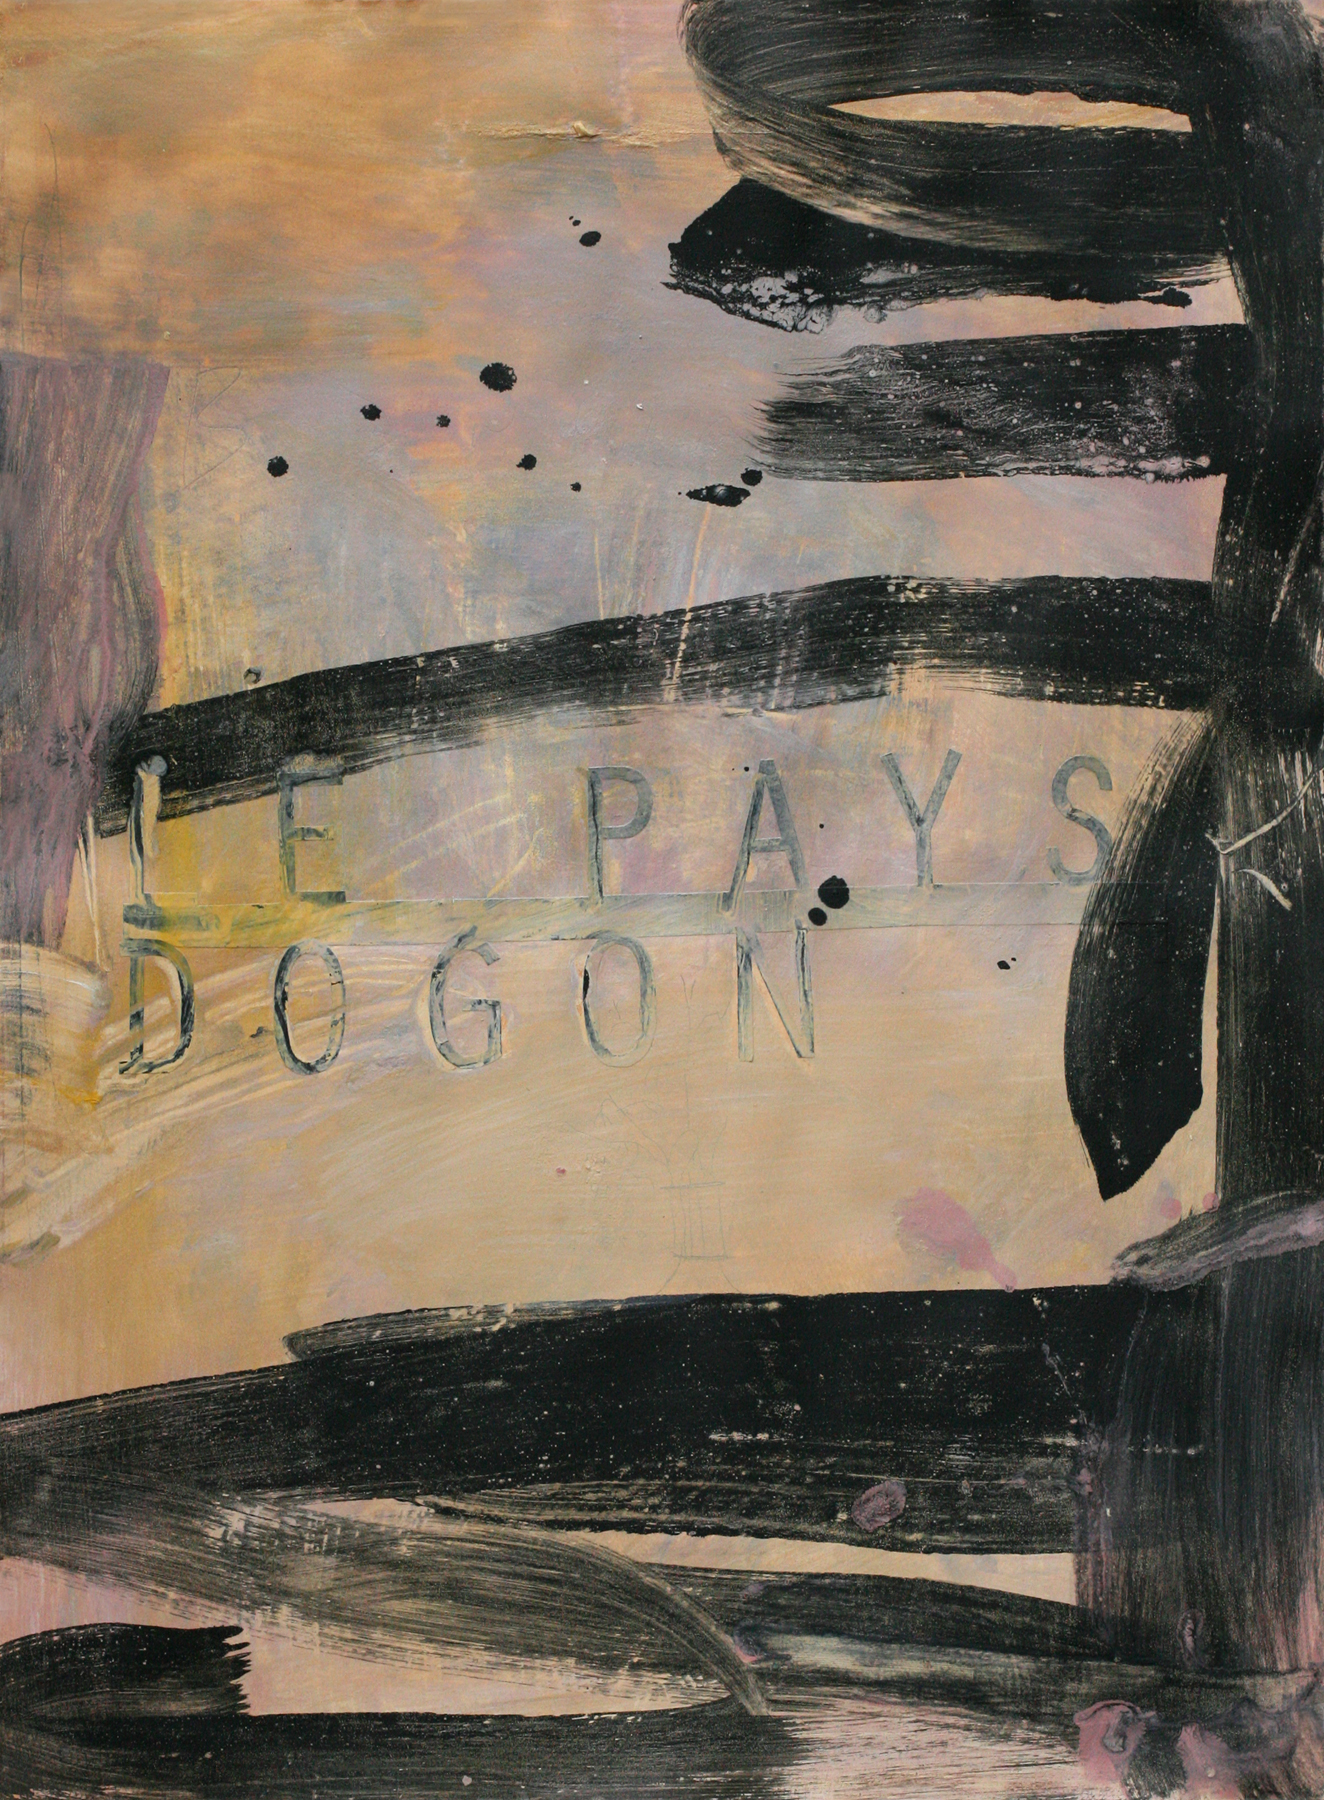 "Le Pays Dogon, acrylic on paper on board, 30"" x 22"""